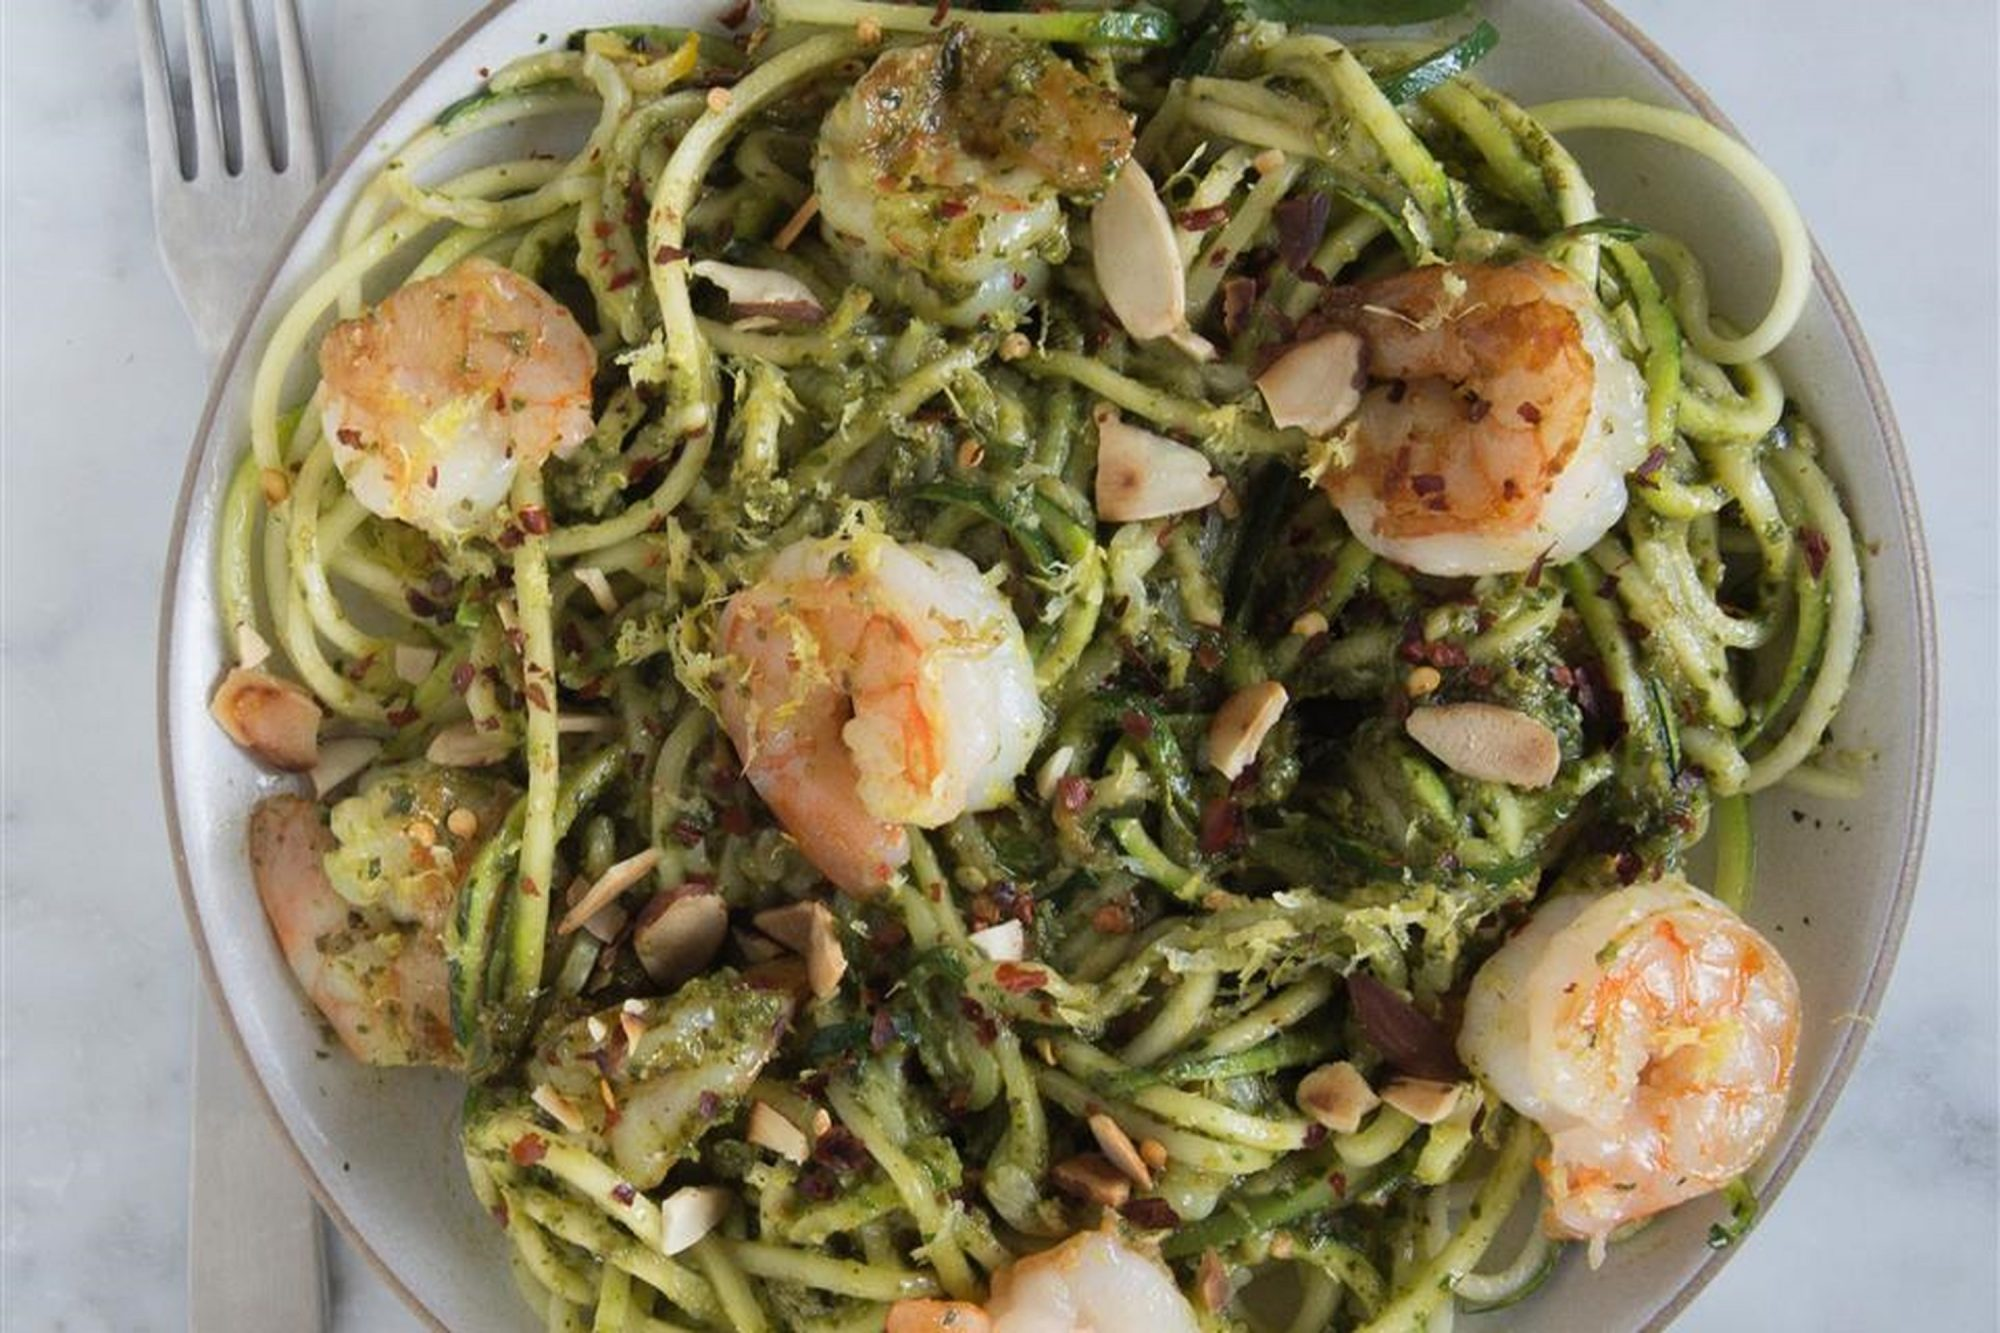 Grilled Shrimp over Zucchini Noodles in bowl